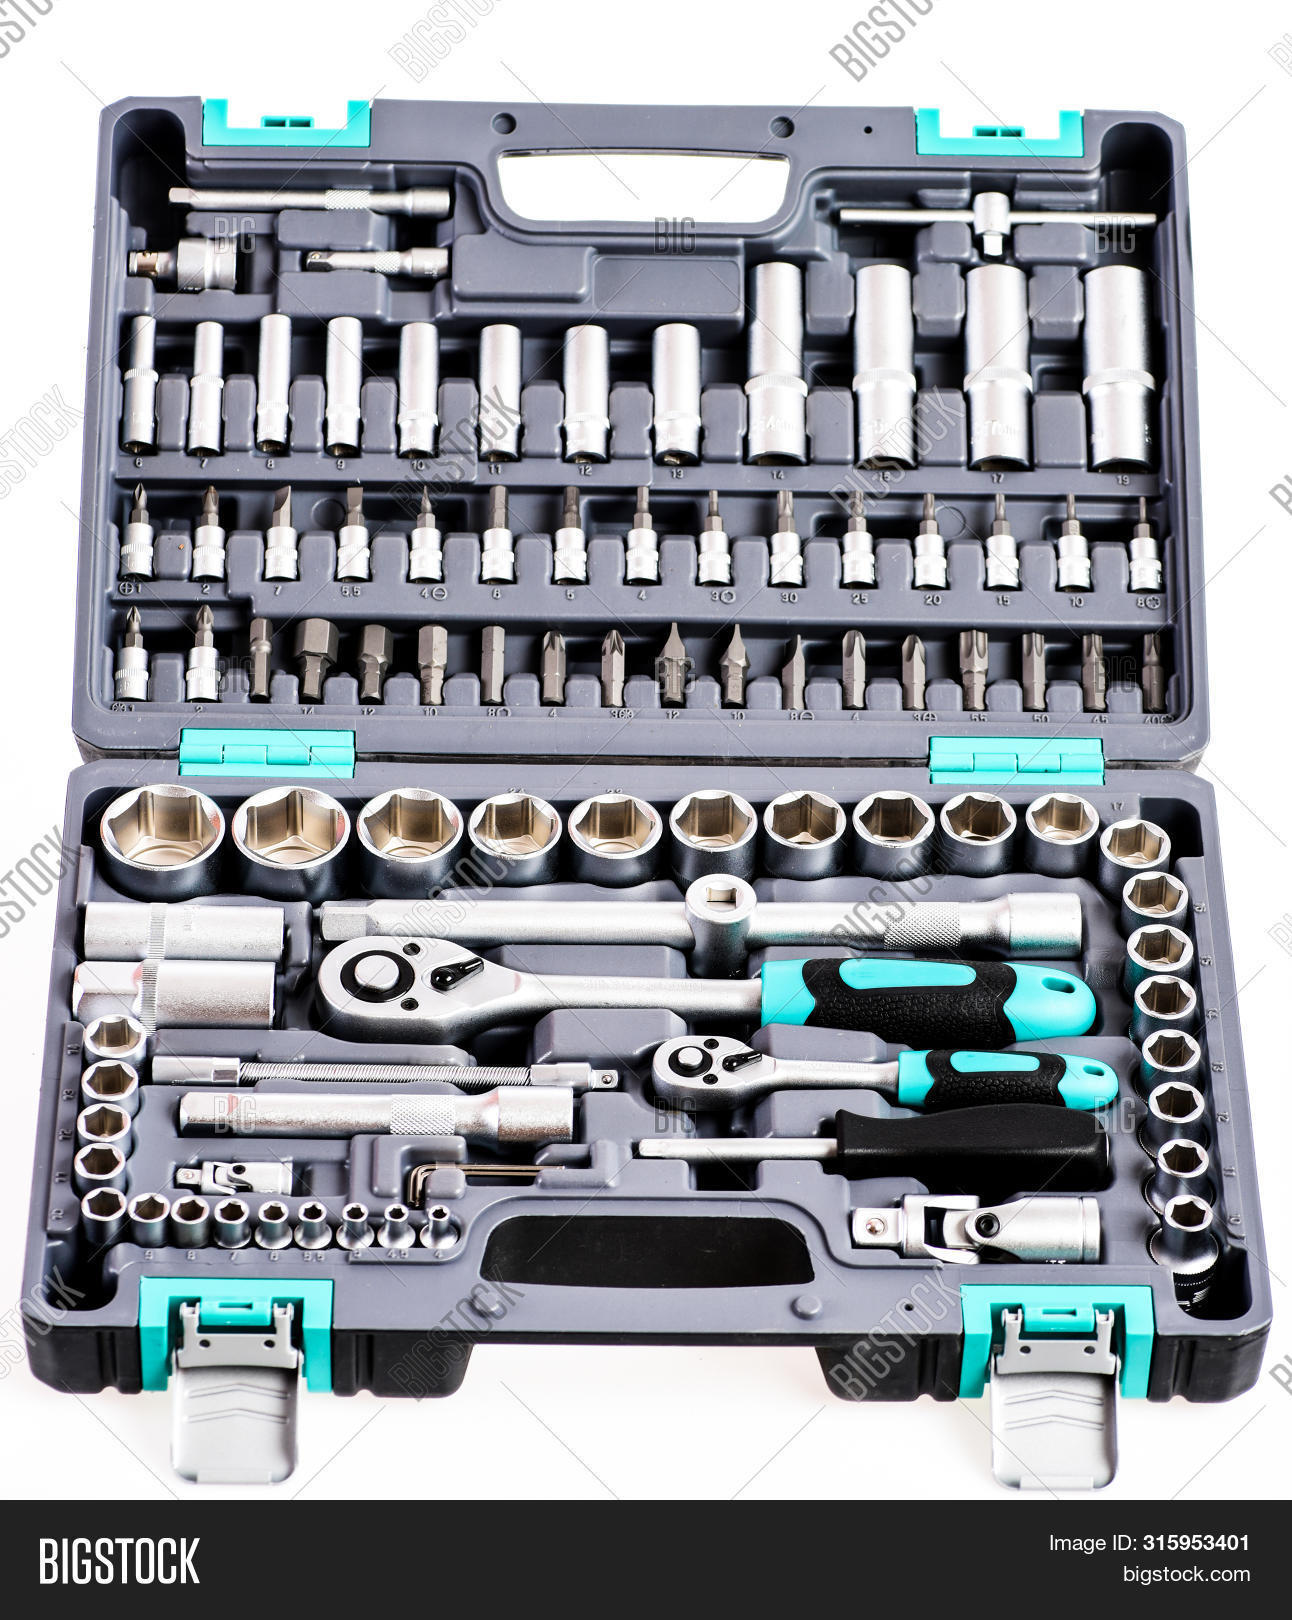 case,chrome,compact,coustomer,customer,drive,driver,durability,equipment,excellent,experience,fixing,hand,kit,metallic,metallized,metalworking,multi,multi-purpose,parts,perfect,plating,pro,purpose,quality,ratchet,service,set,small,socket,spanner,steel,strength,tool,torx,vanadium,work,wrench